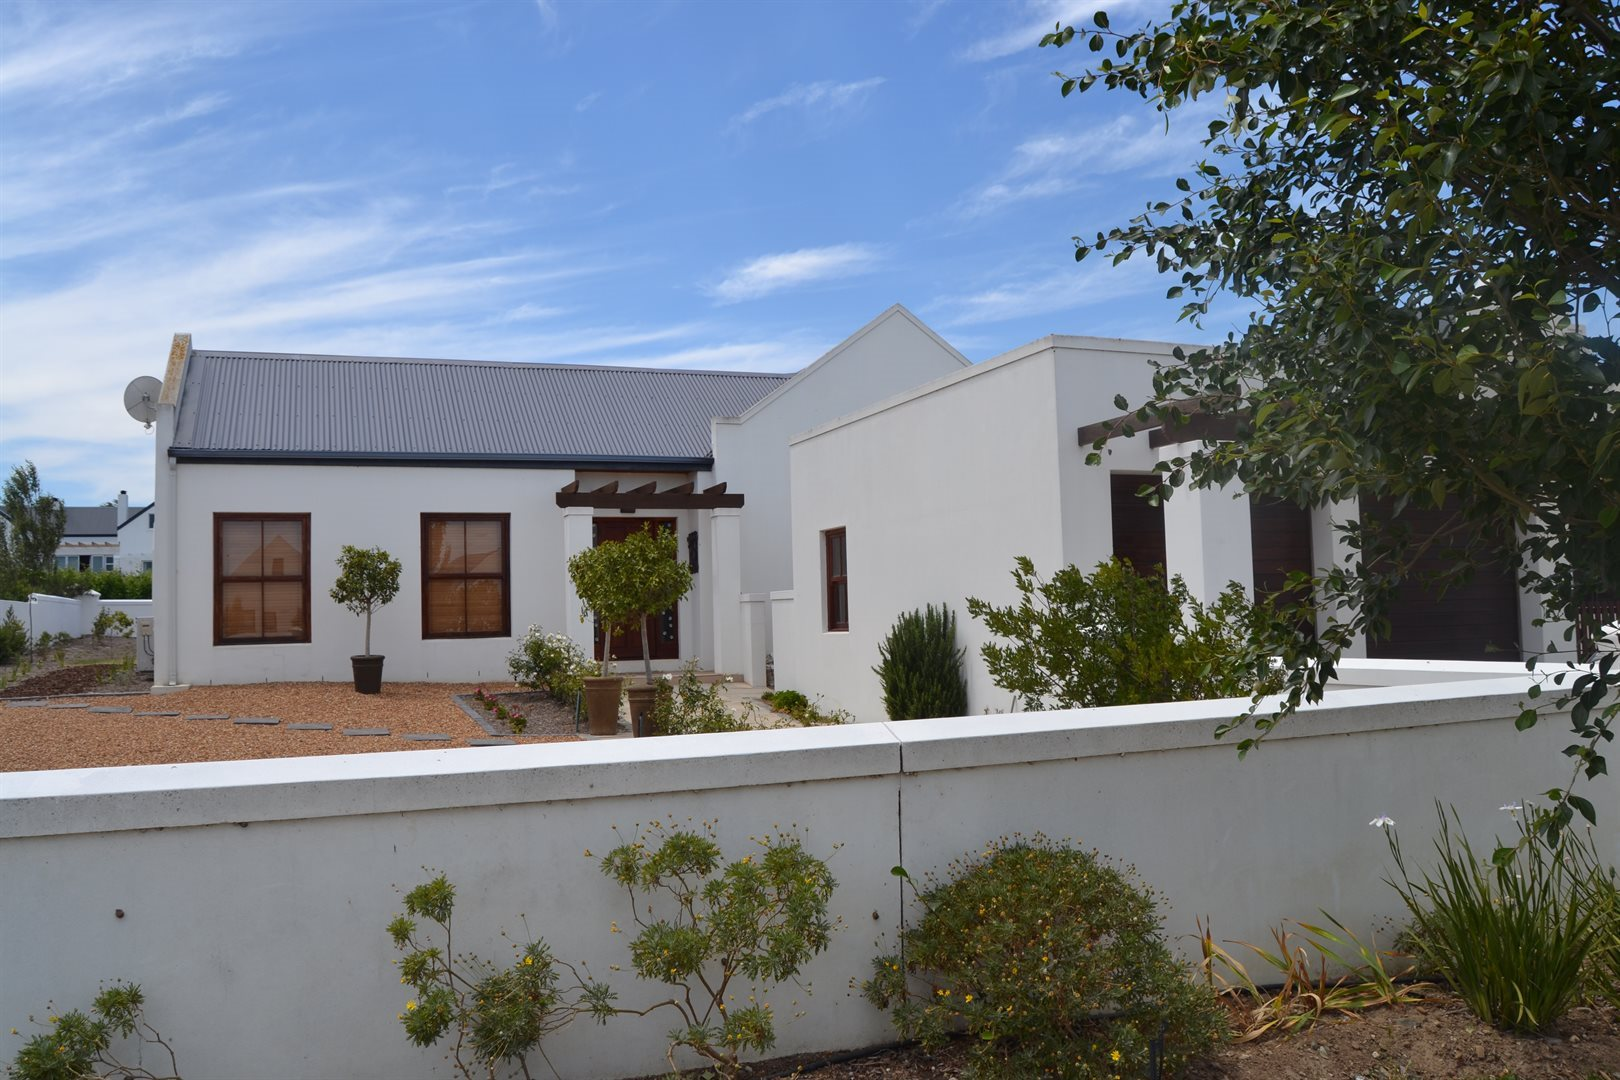 Property and Houses for sale in Somerset West (All), House, 4 Bedrooms - ZAR 3,700,000